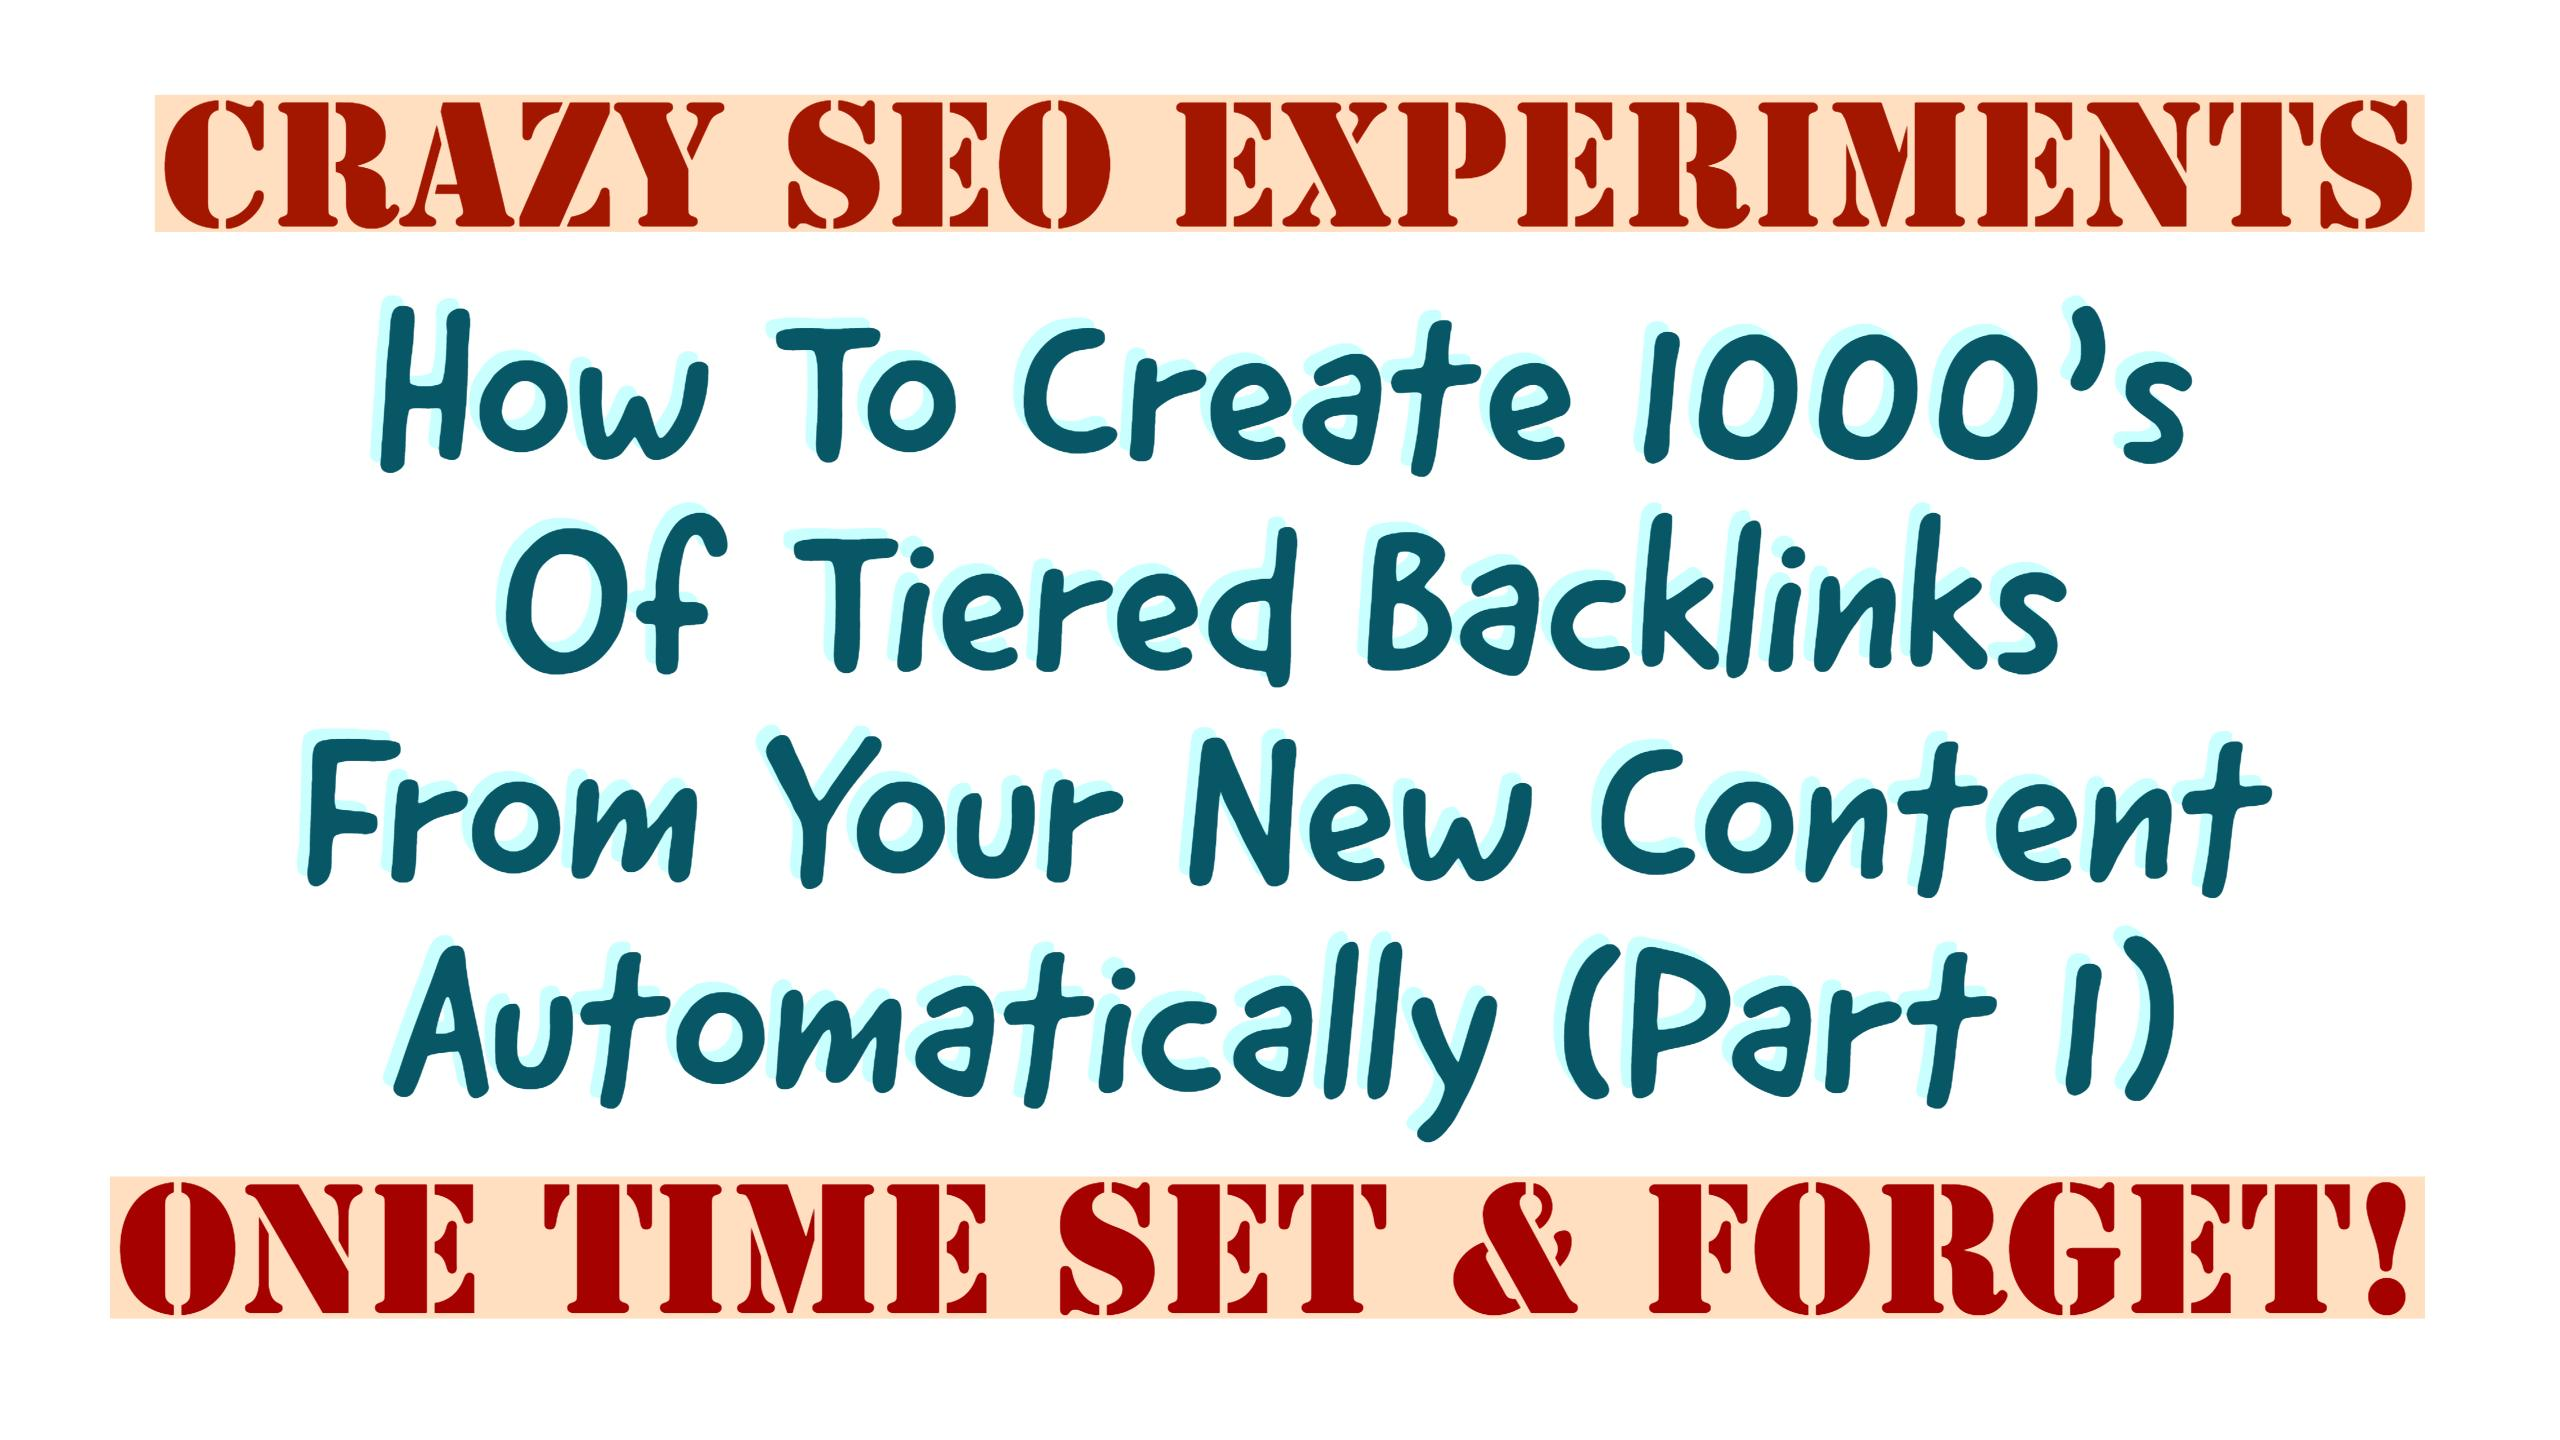 How To Automate 1000's Of Tiered Links With The Power Of RSS Feed SEO